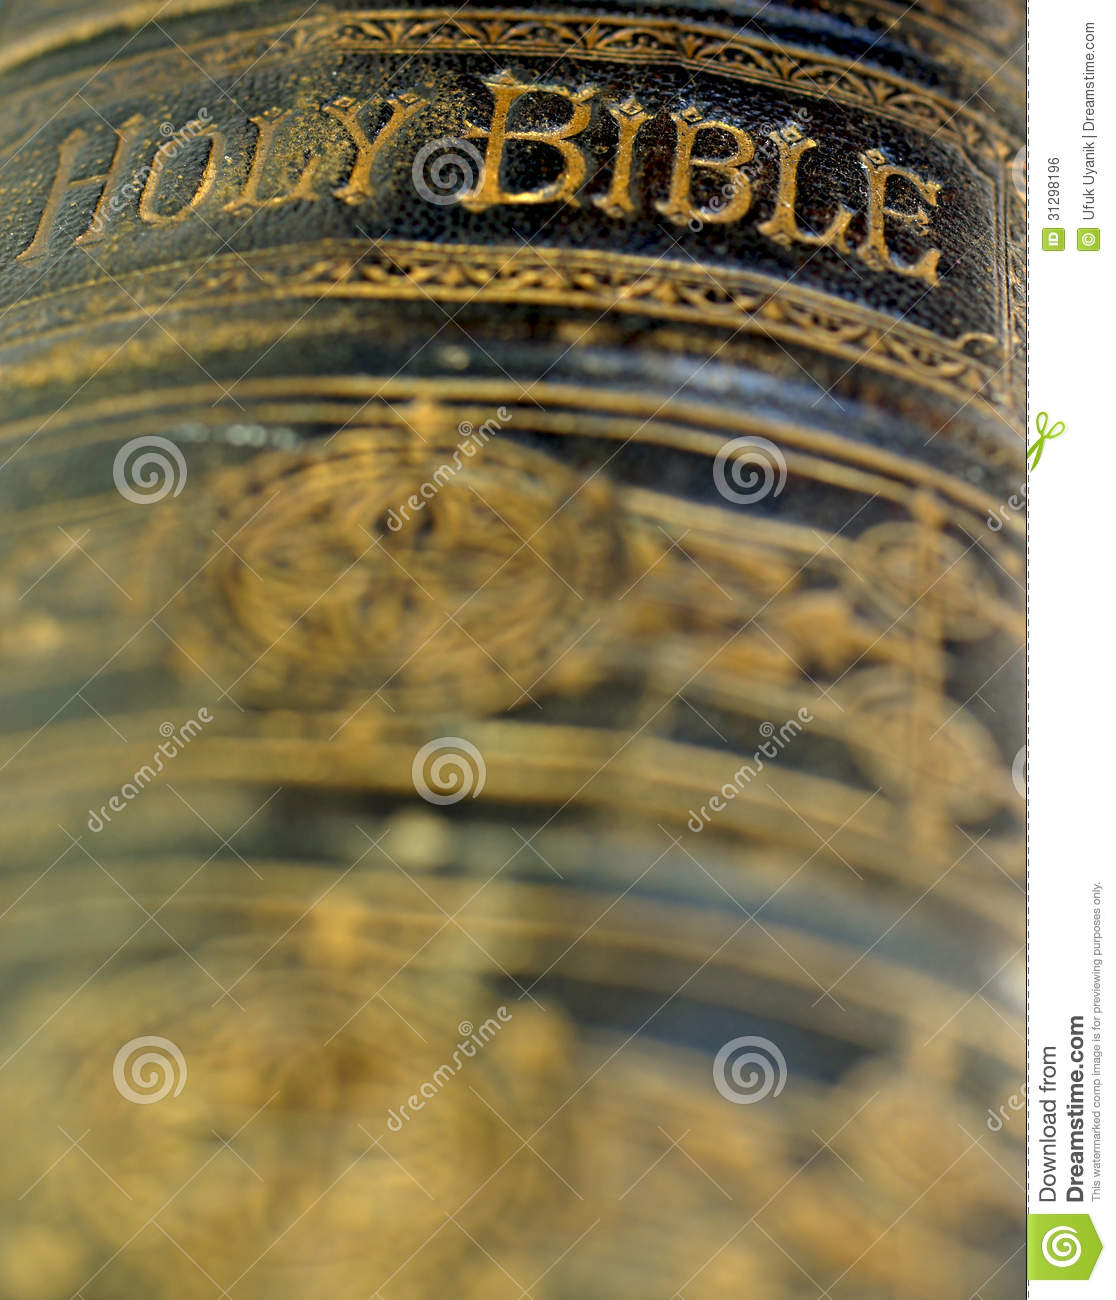 Vintage Leather Look Jeremiah Verse Bible Book Cover Large: Old Ancient Bible Royalty Free Stock Image